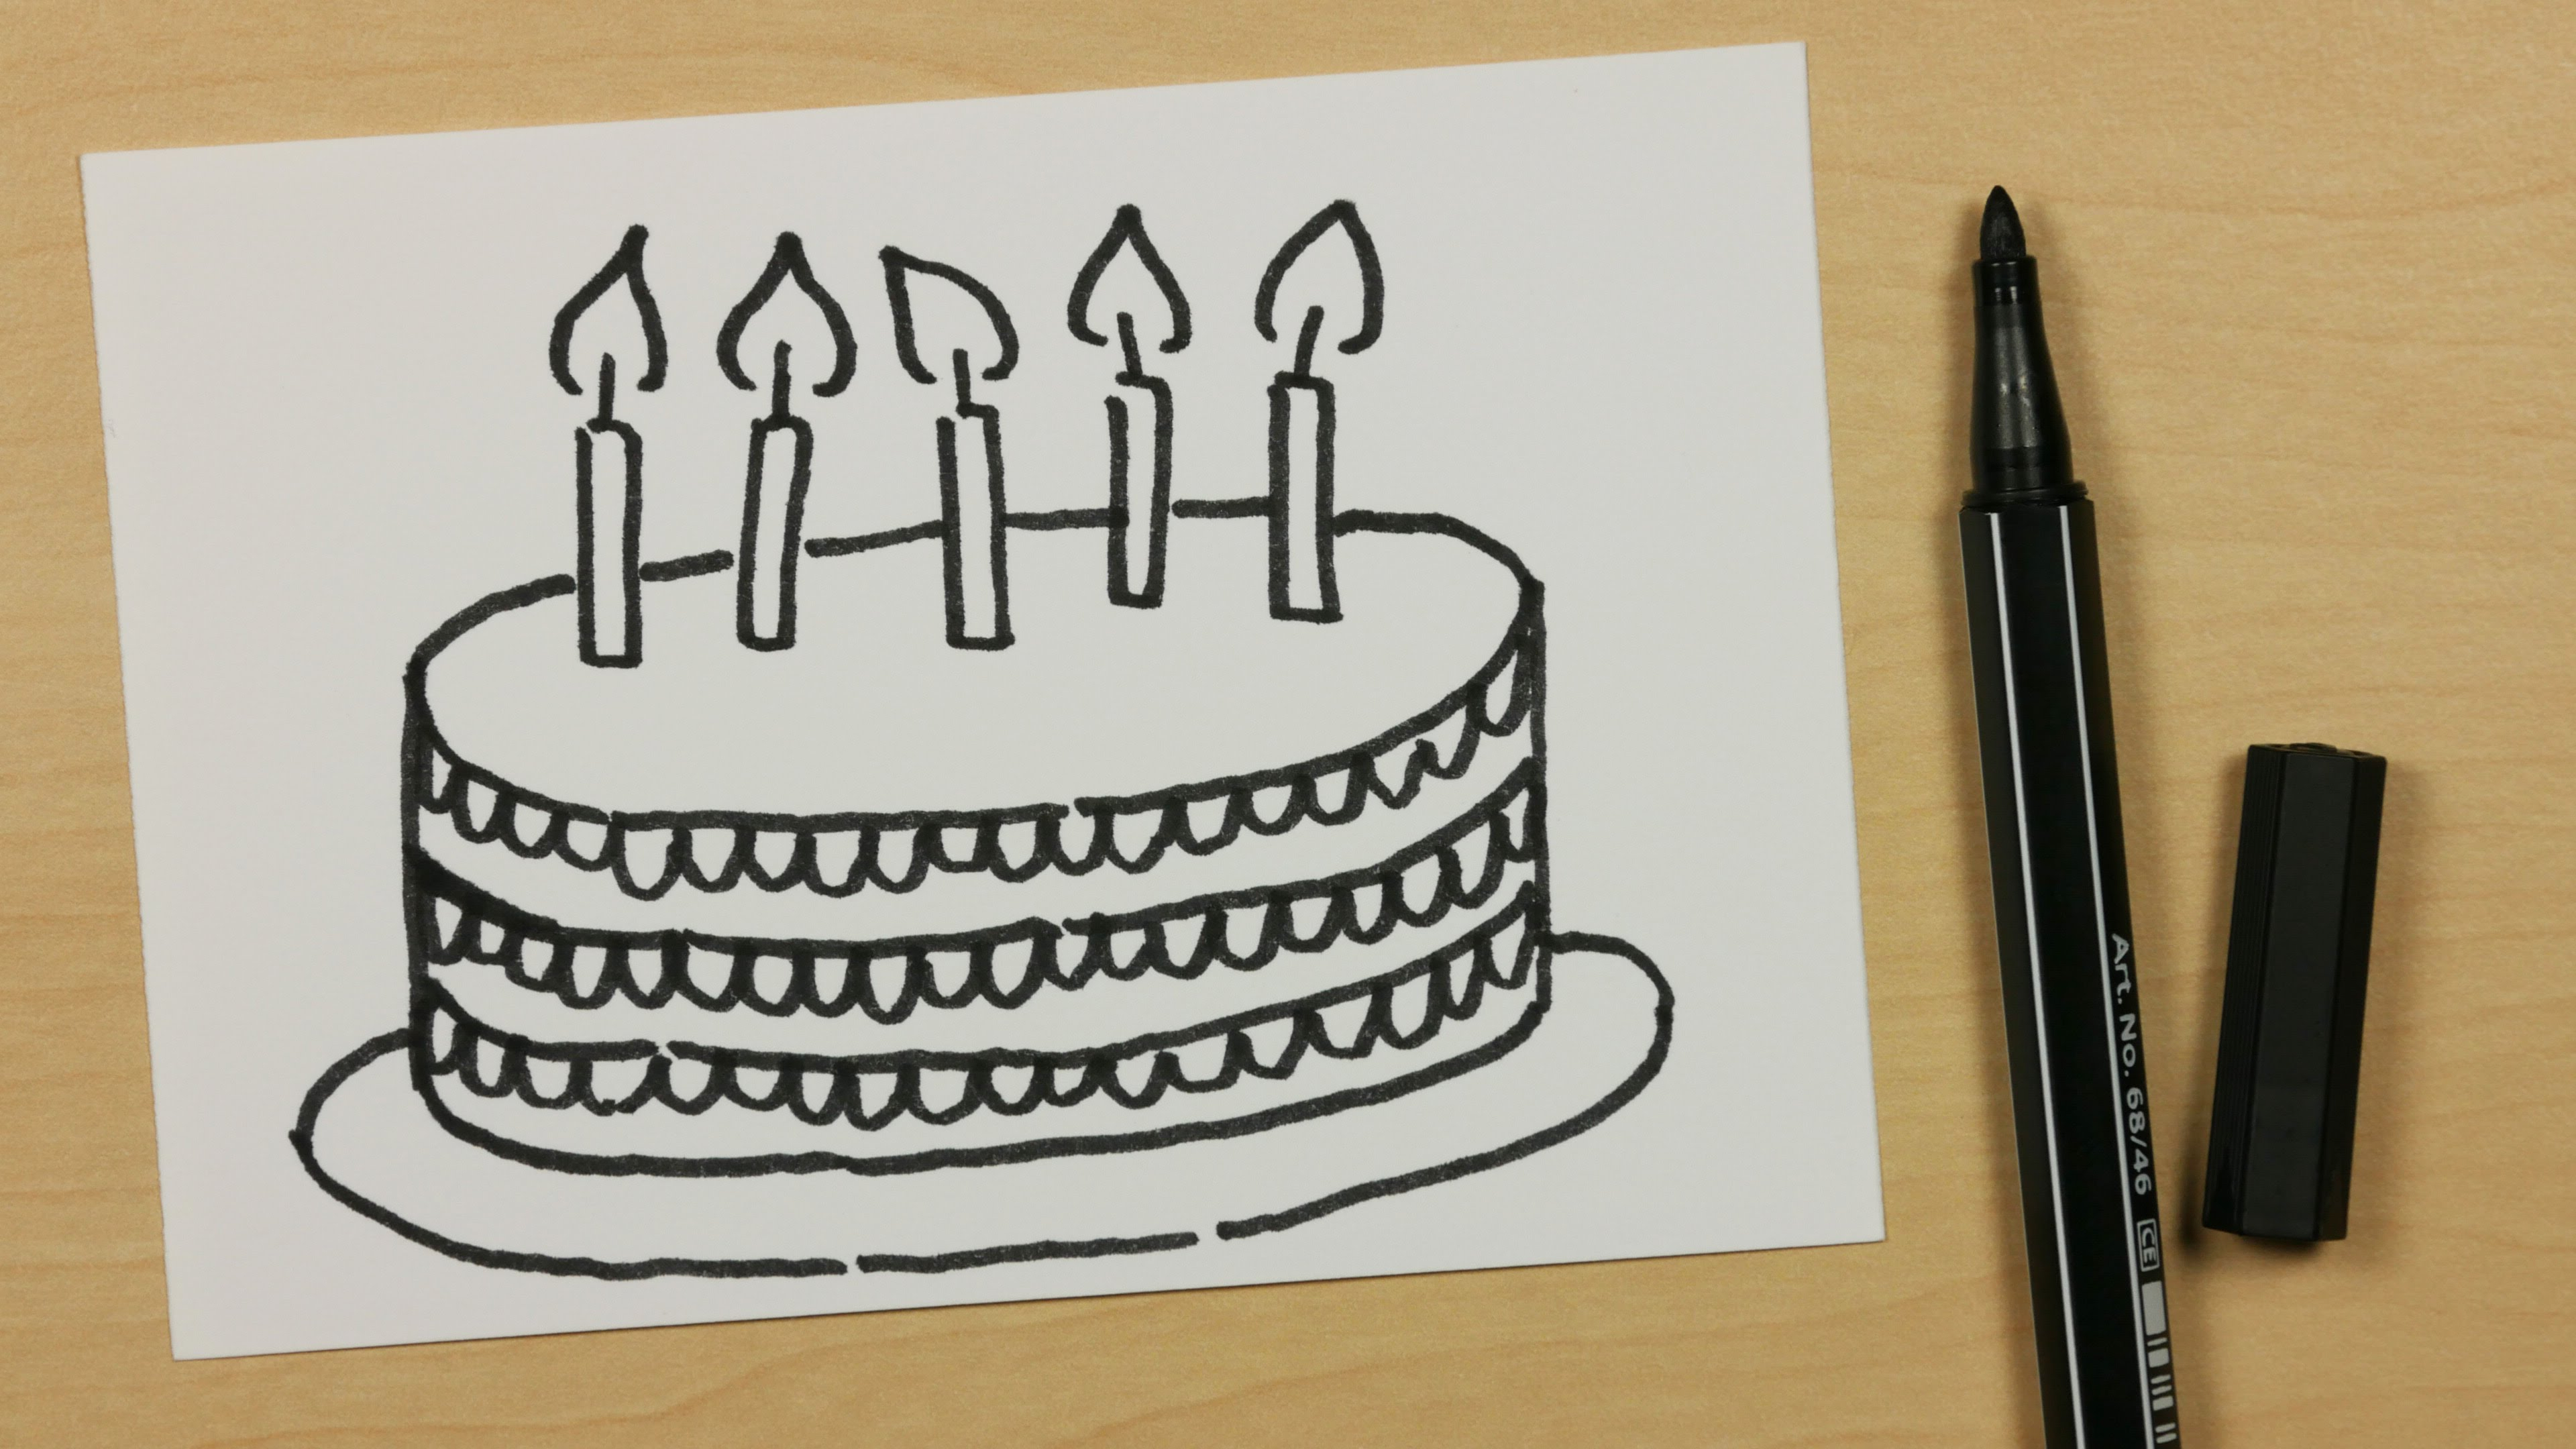 birthday cake easy drawing ; birthday-cake-pencil-drawing-photos-how-to-draw-a-happy-birthday-cake-easy-cartoon-doodle-for-kids